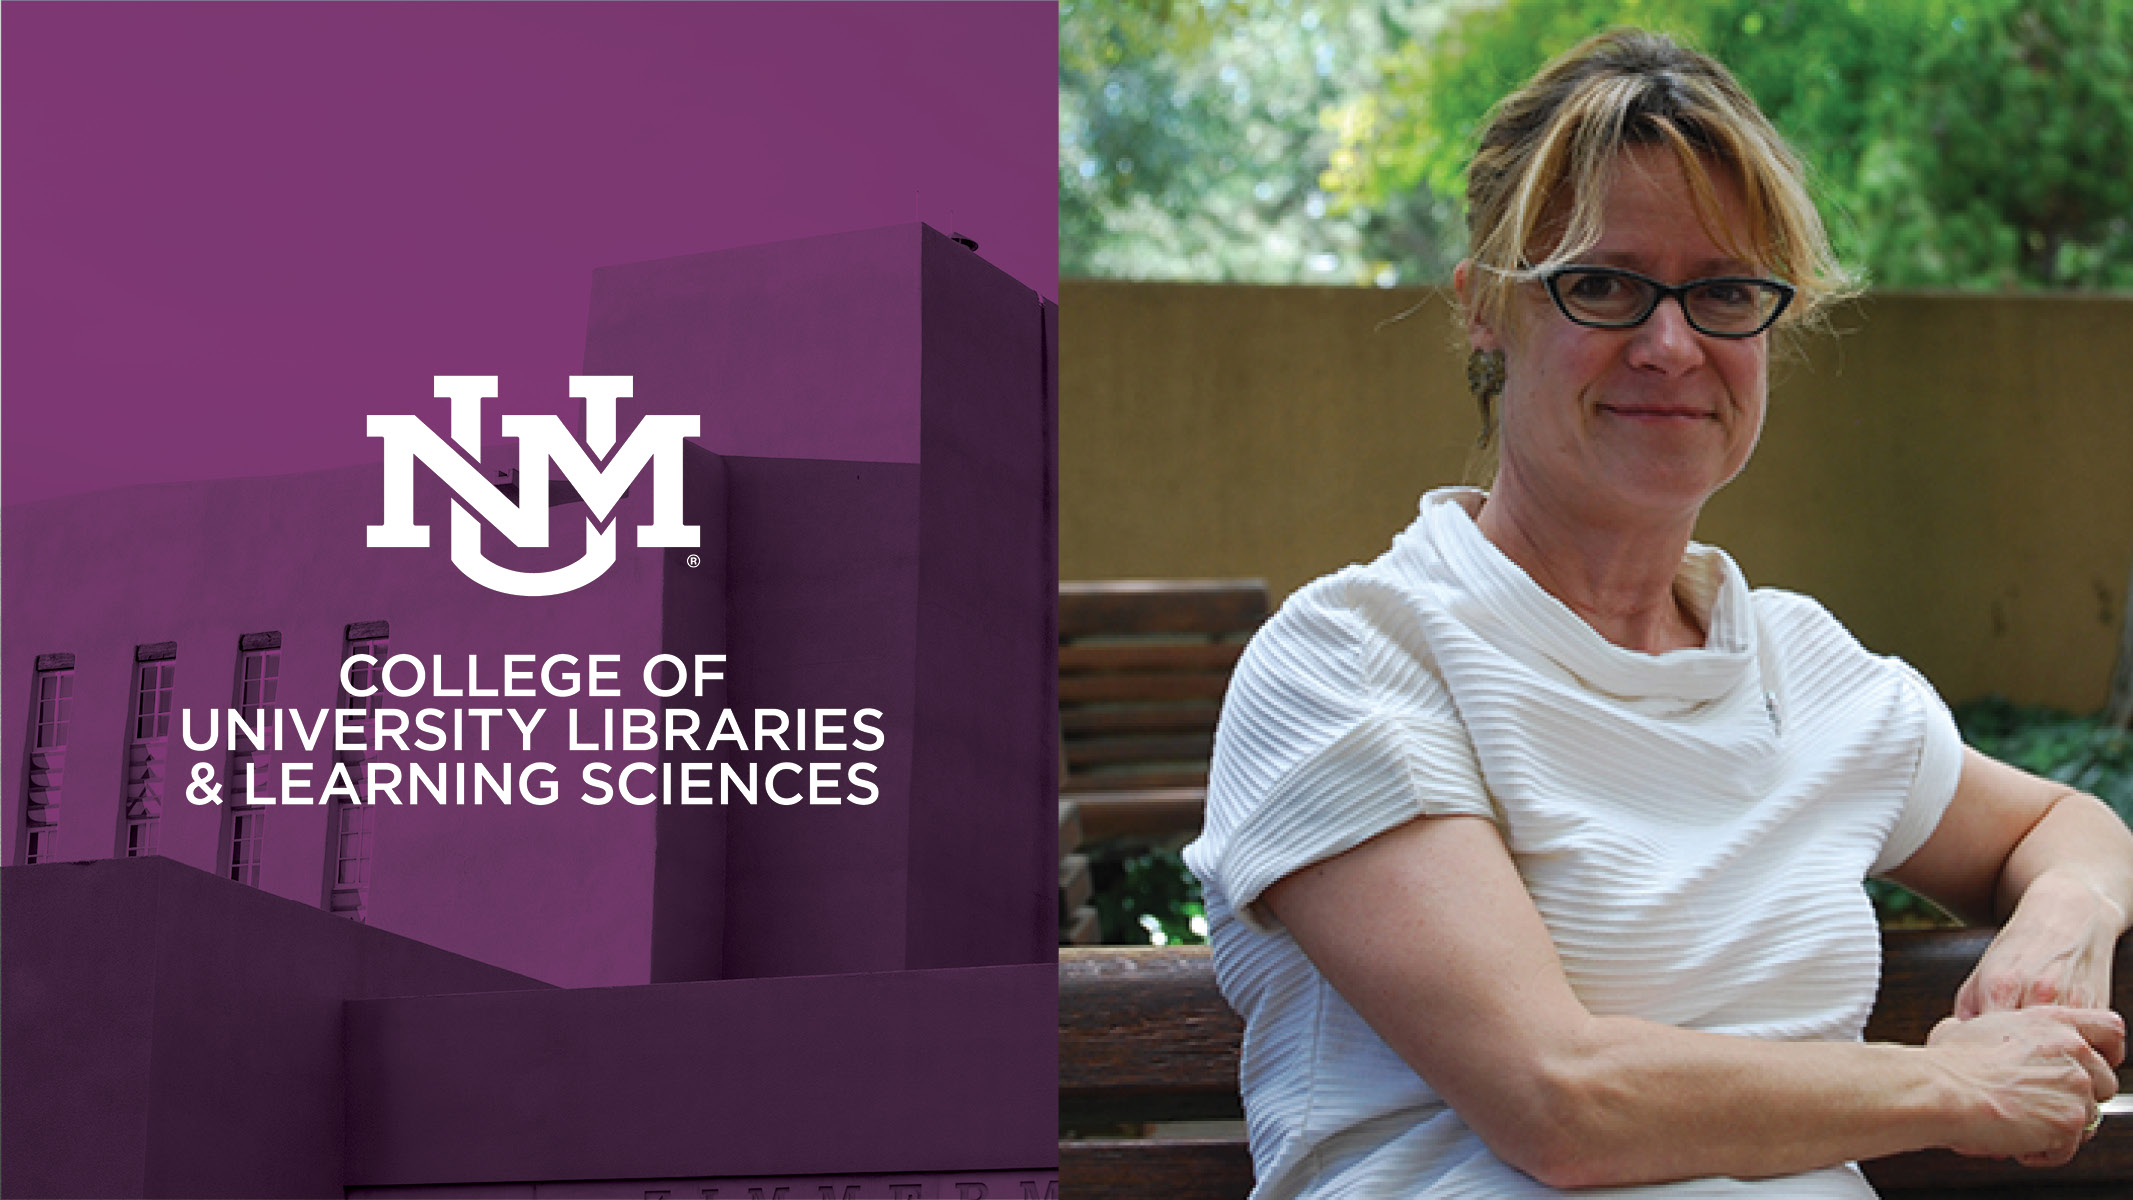 Image of Cindy Pierard with Logo of UNM College Of University Libraries and Learning Sciences